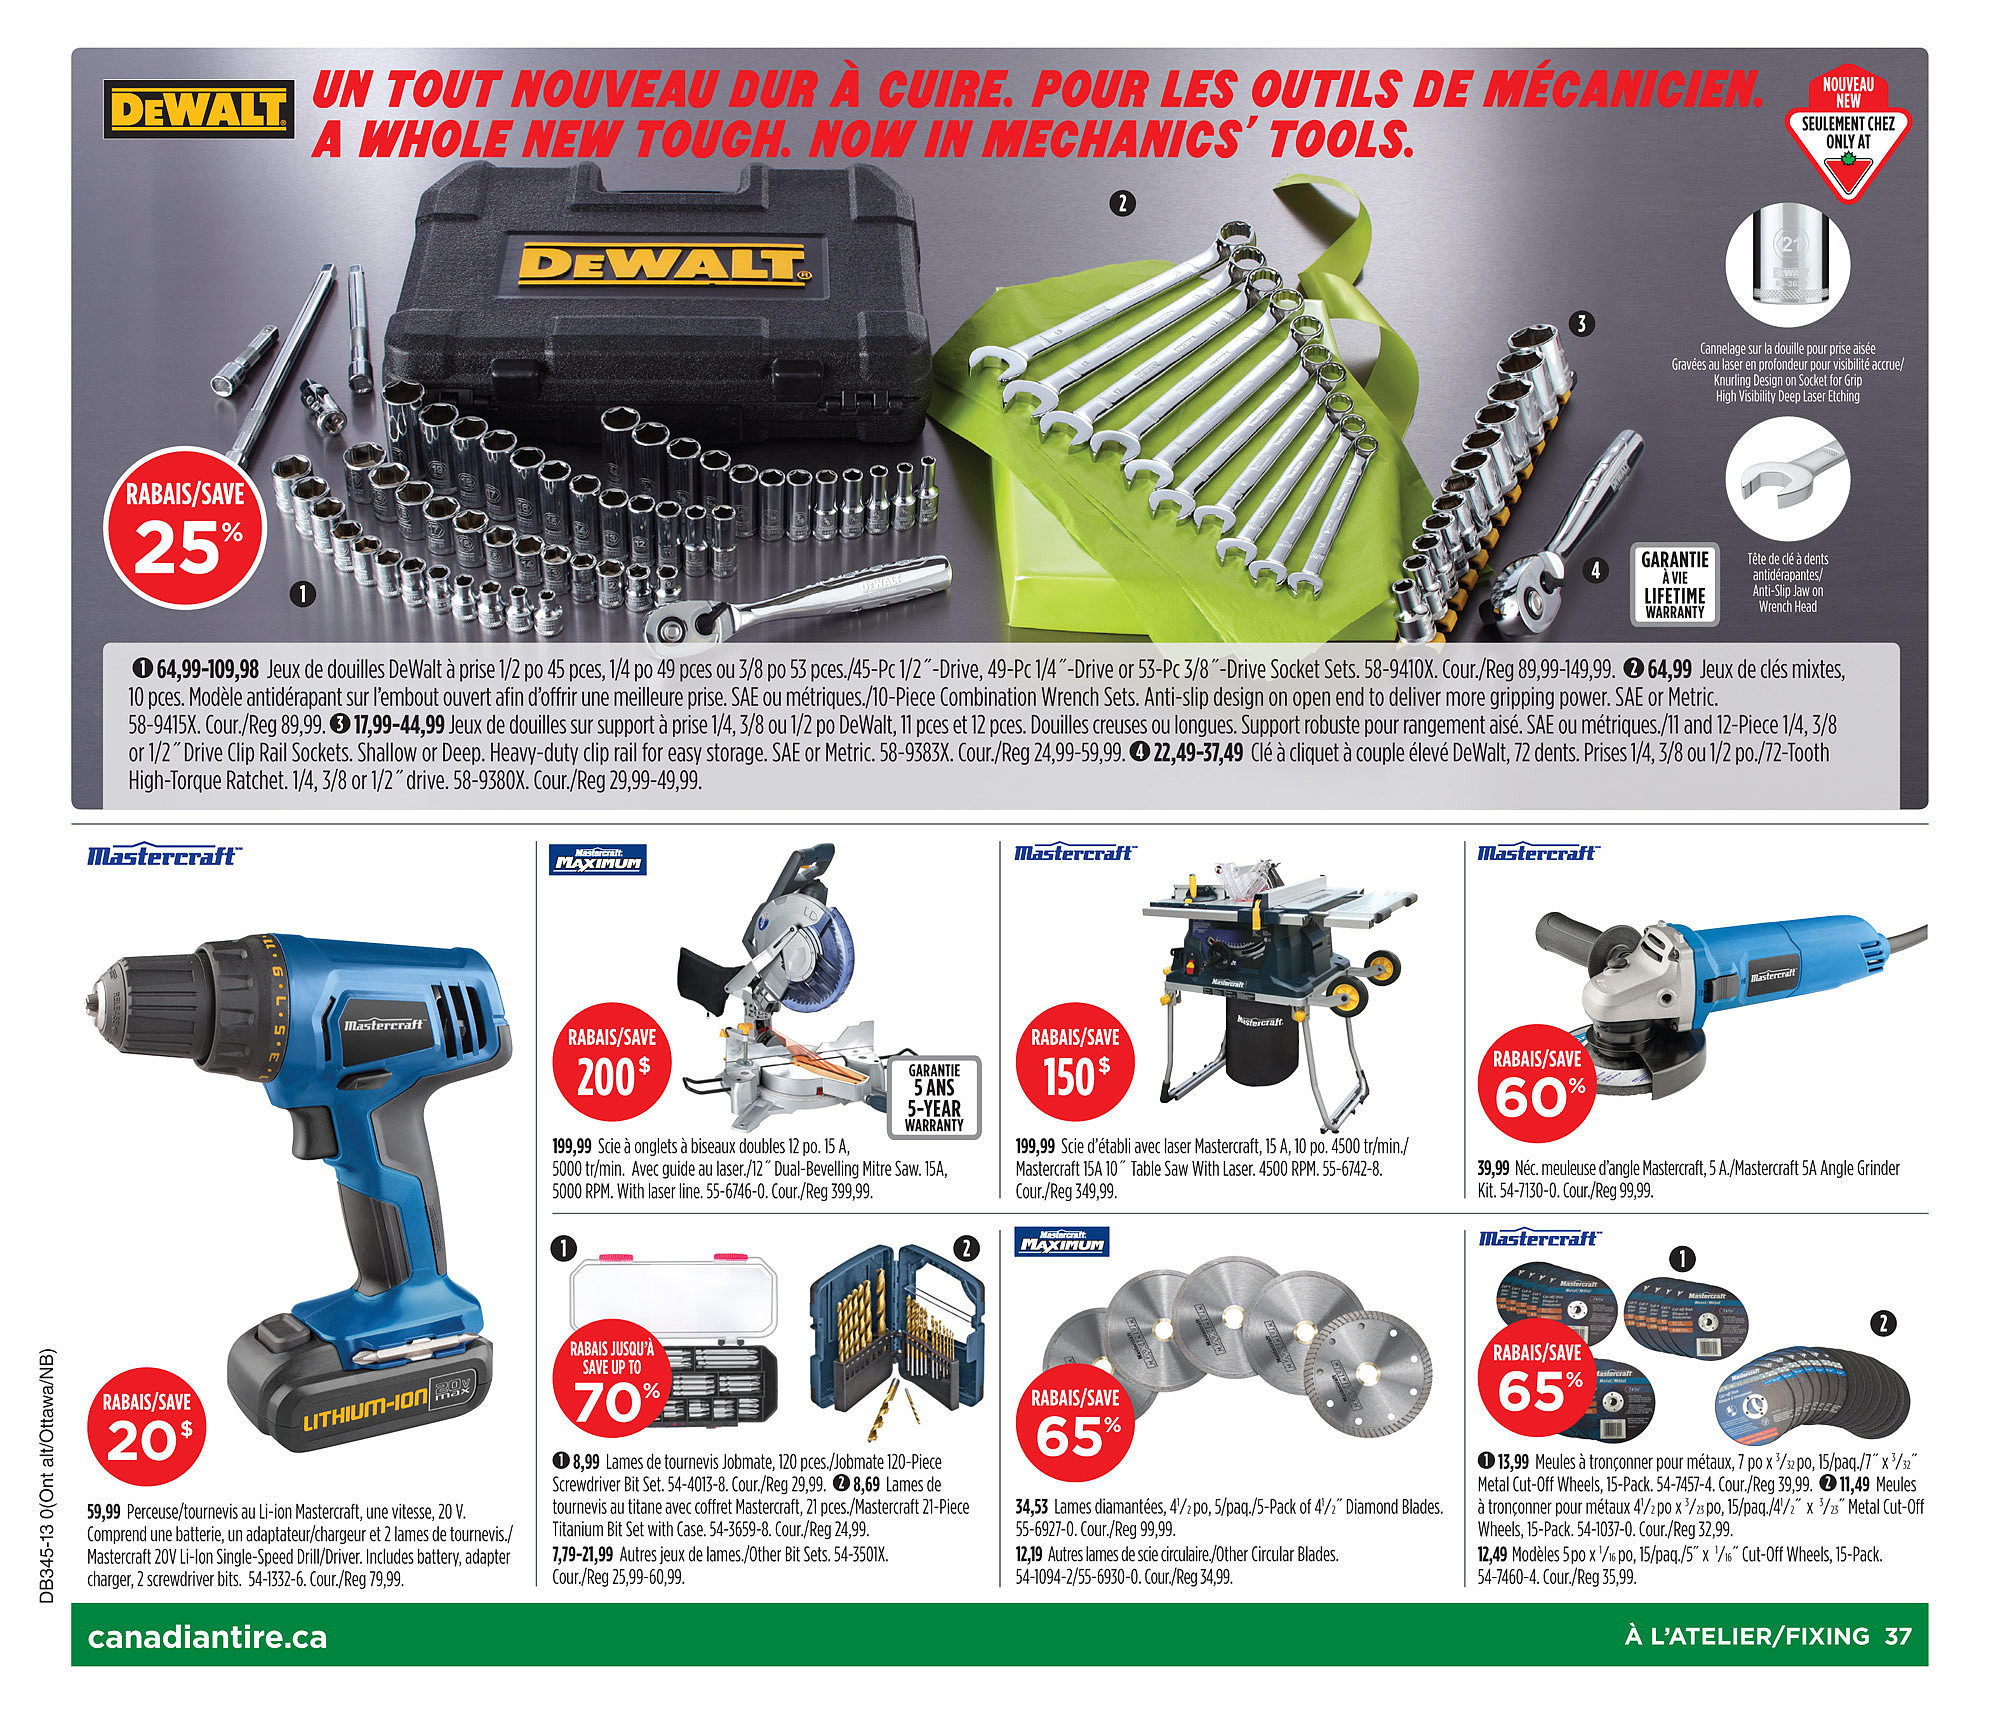 Canadian Tire Weekly Flyer Weekly Flyer Oct 31 Nov 7